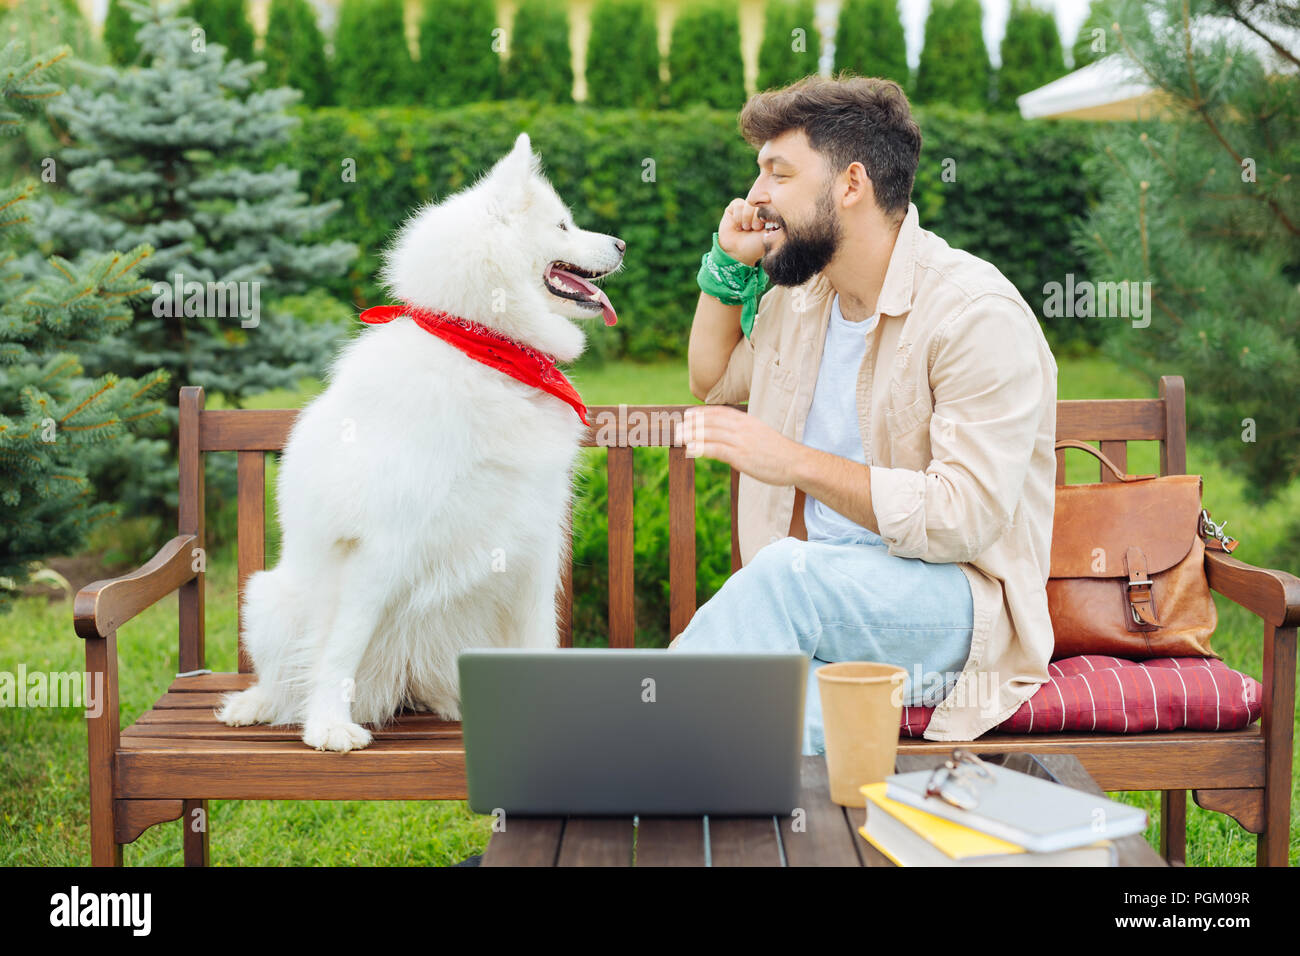 Bearded man wearing green hand band playing with his pet - Stock Image